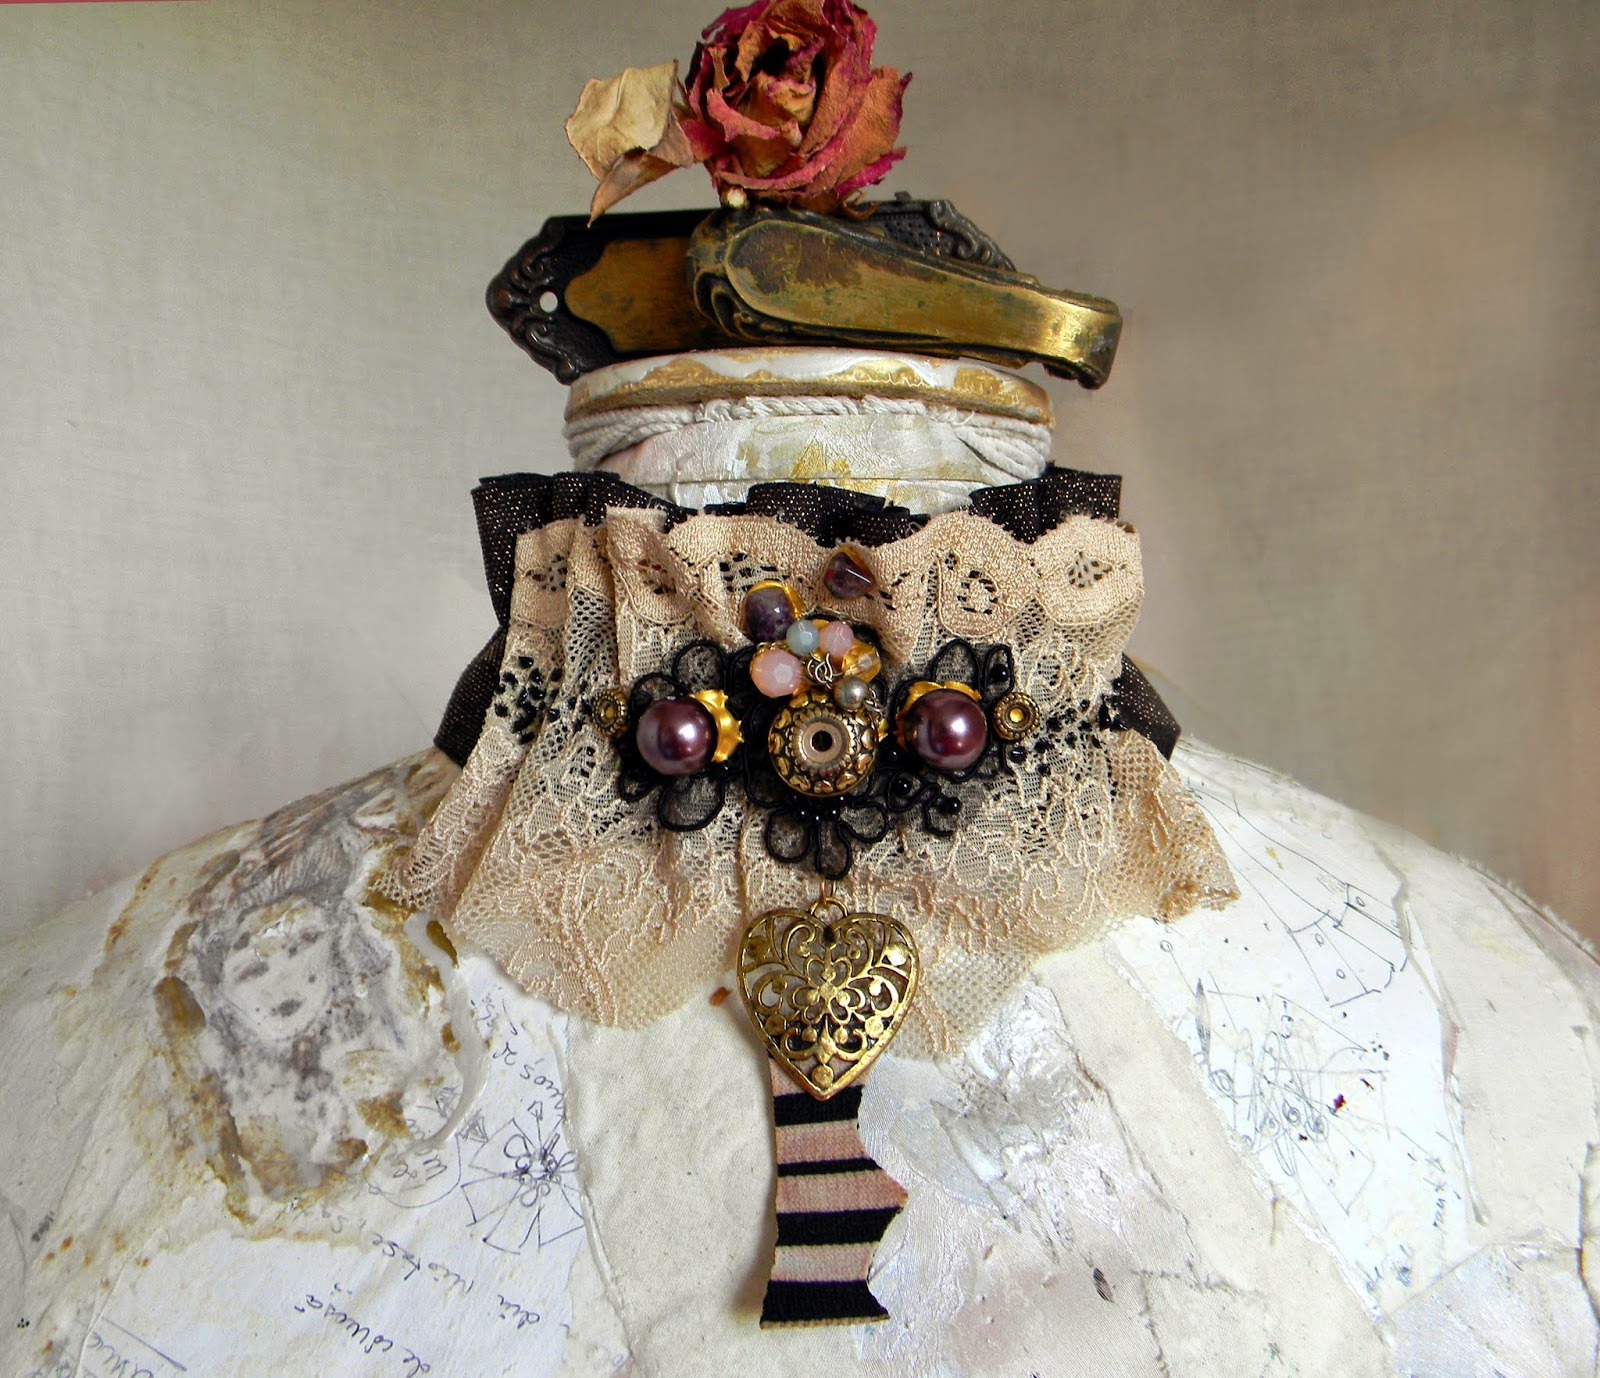 Vintage Inspired Lace and Brocade Choker, Ruffled Neck Piece, Beaded Collar